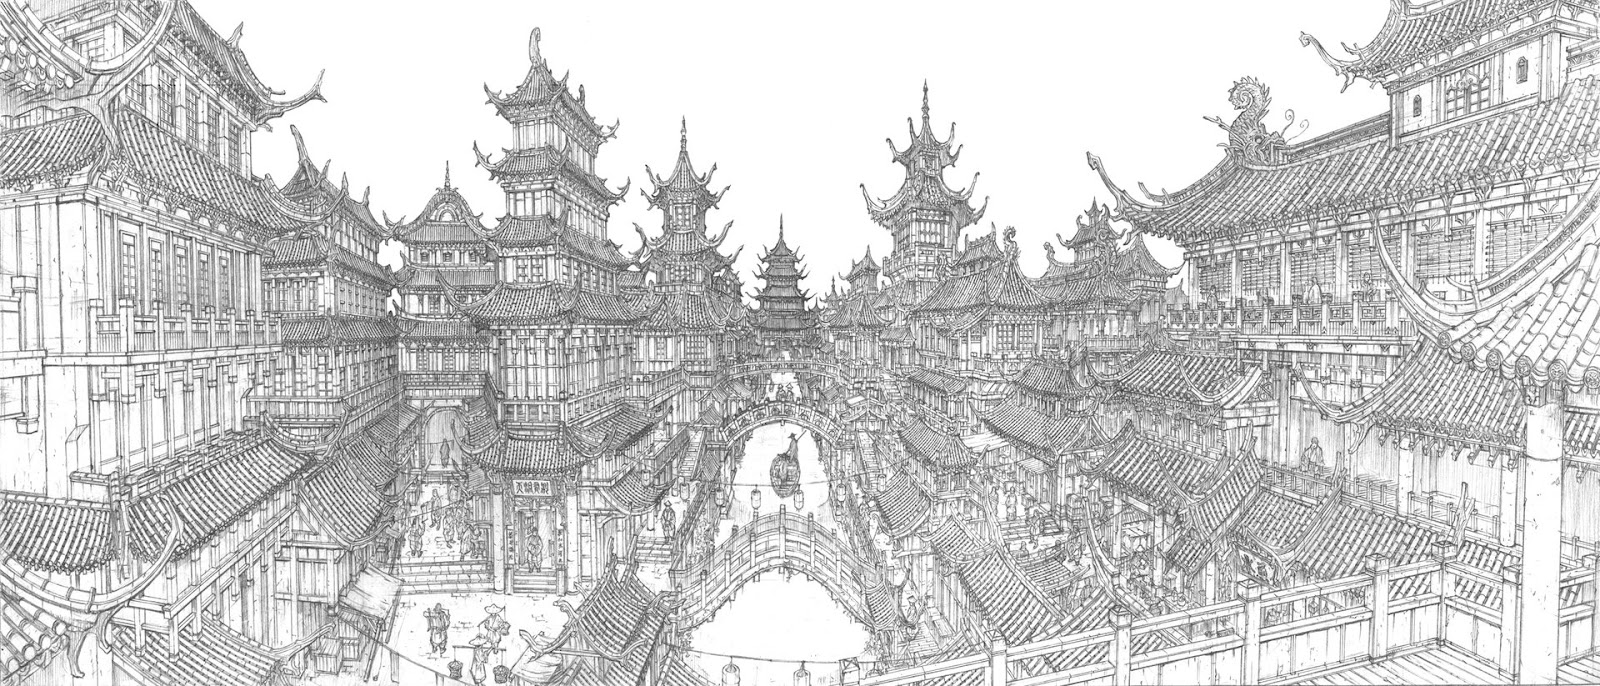 02-Jung-Min-Seub-Architecture-in-Super-Detailed-Fantasy-Drawings-www-designstack-co